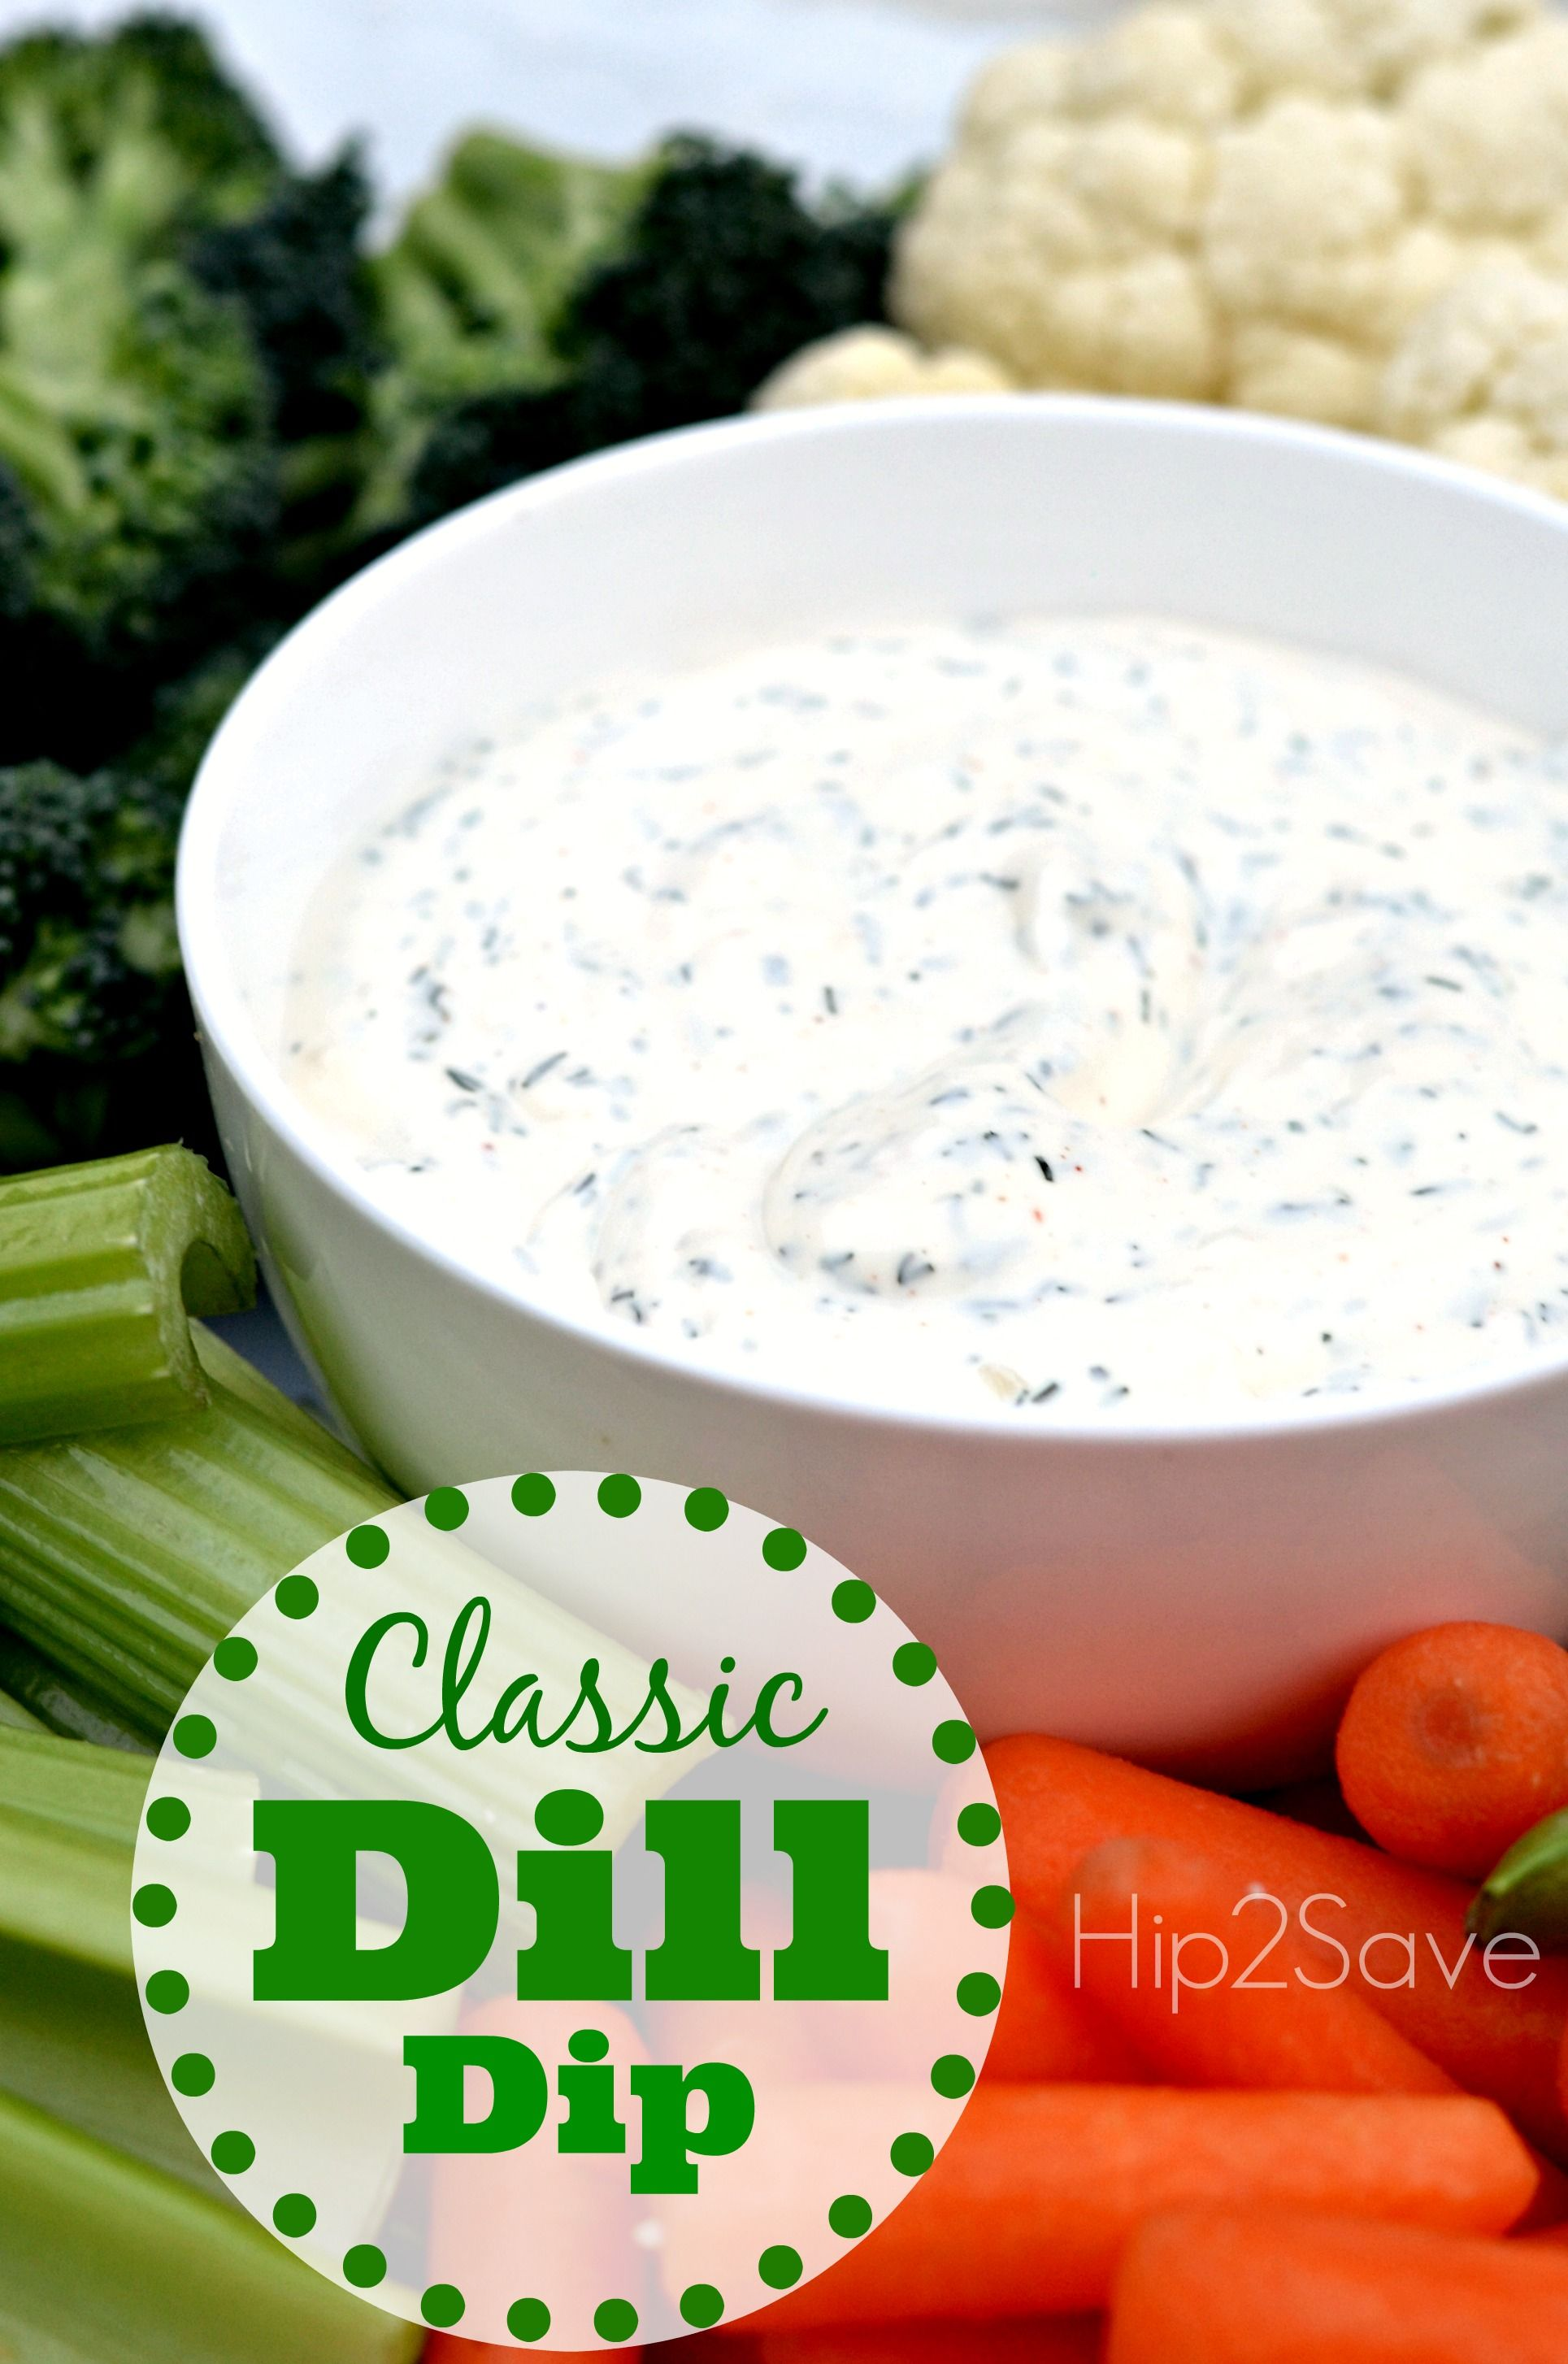 If You Re Looking For A Quick Appetizer Idea Try This Classic Creamy Dill Dip That S Both Easy To Make And A Crowd Pleaser It Requir With Images Dill Dip Recipes Dill